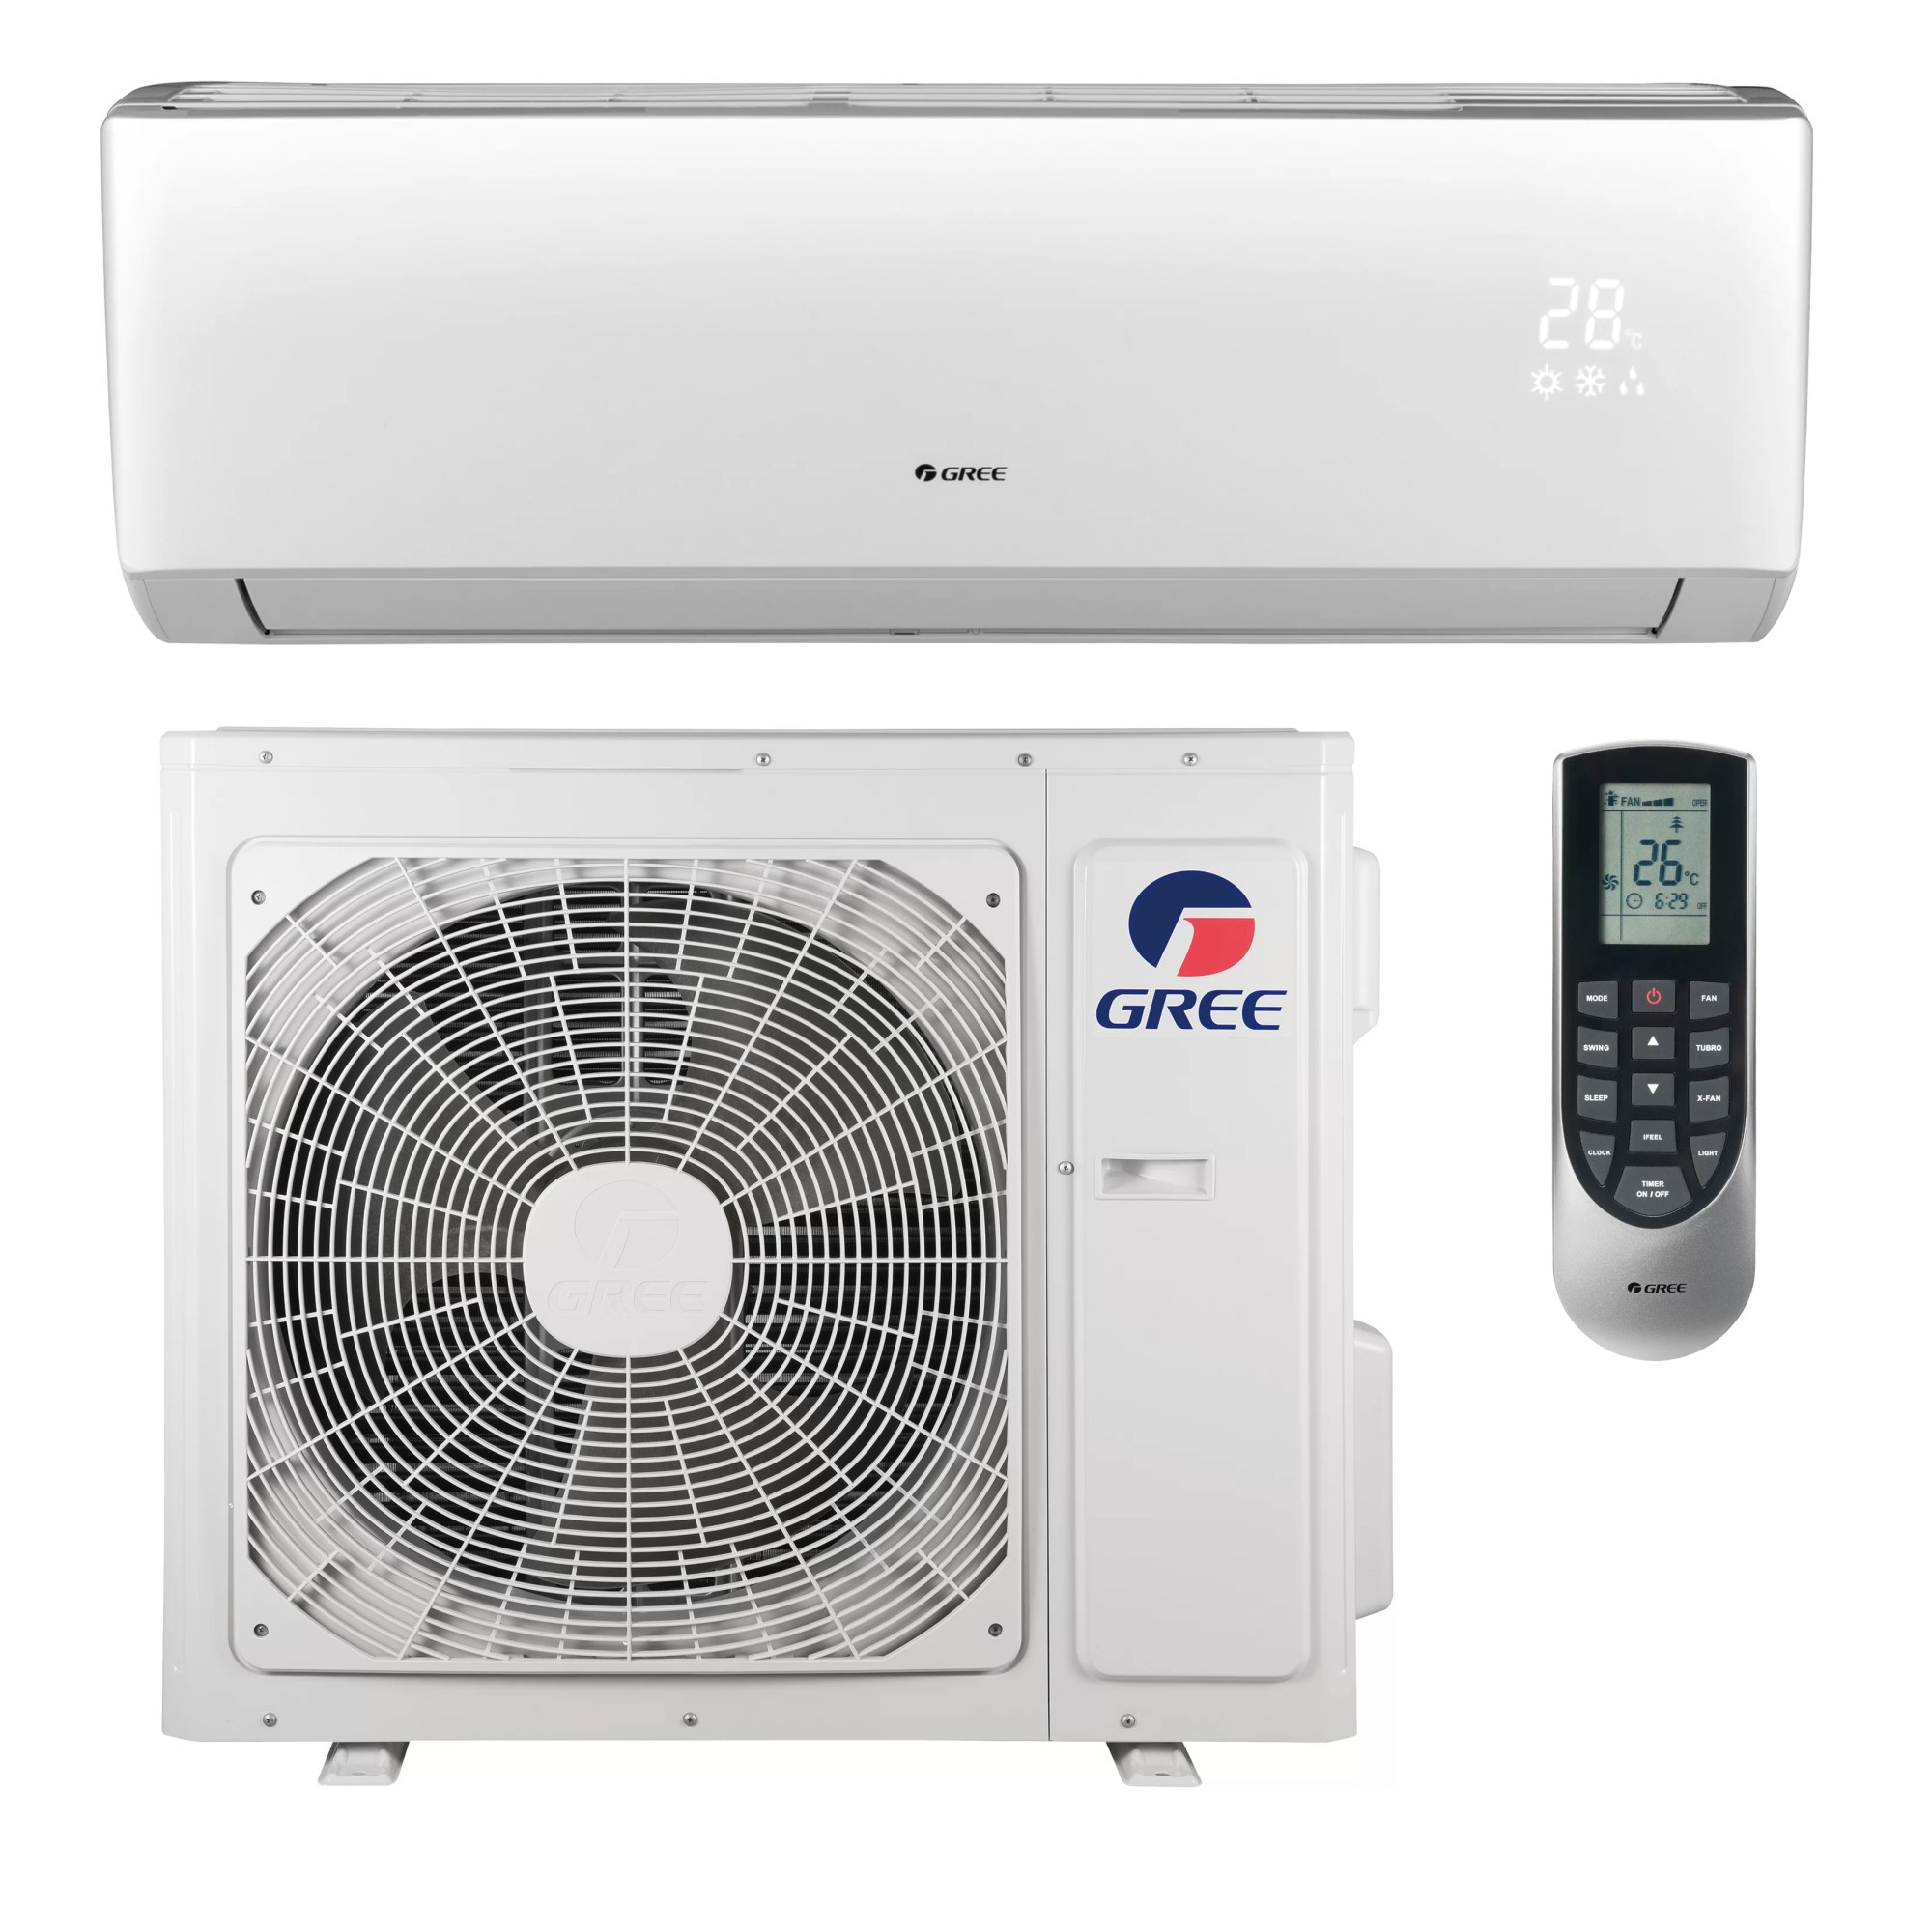 hight resolution of gree livo 22 000 btu ductless mini split air conditioner with heater and remote wayfair ca